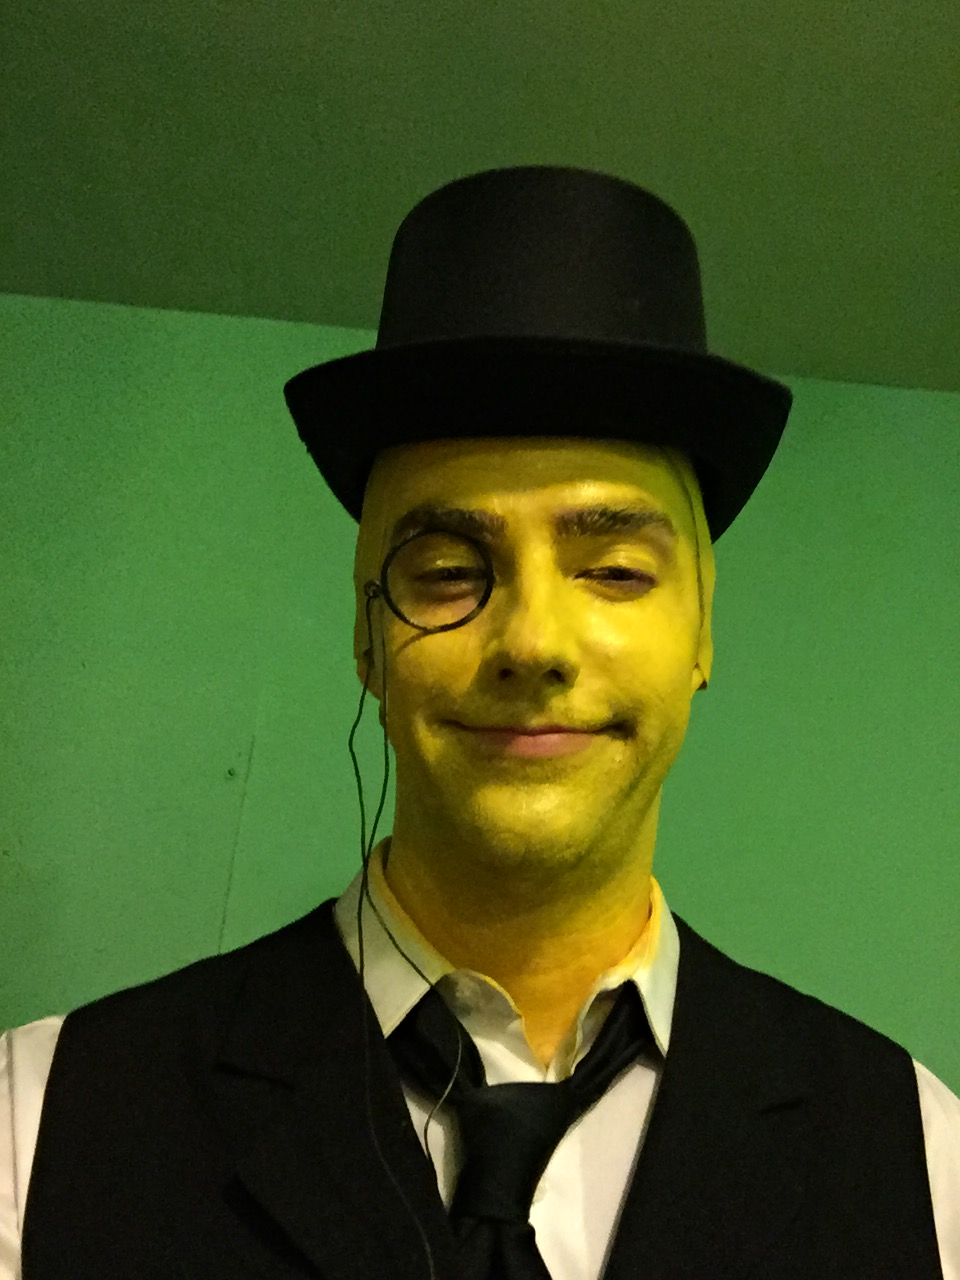 Drunk Mr. Peanut from OSFUG Character Show